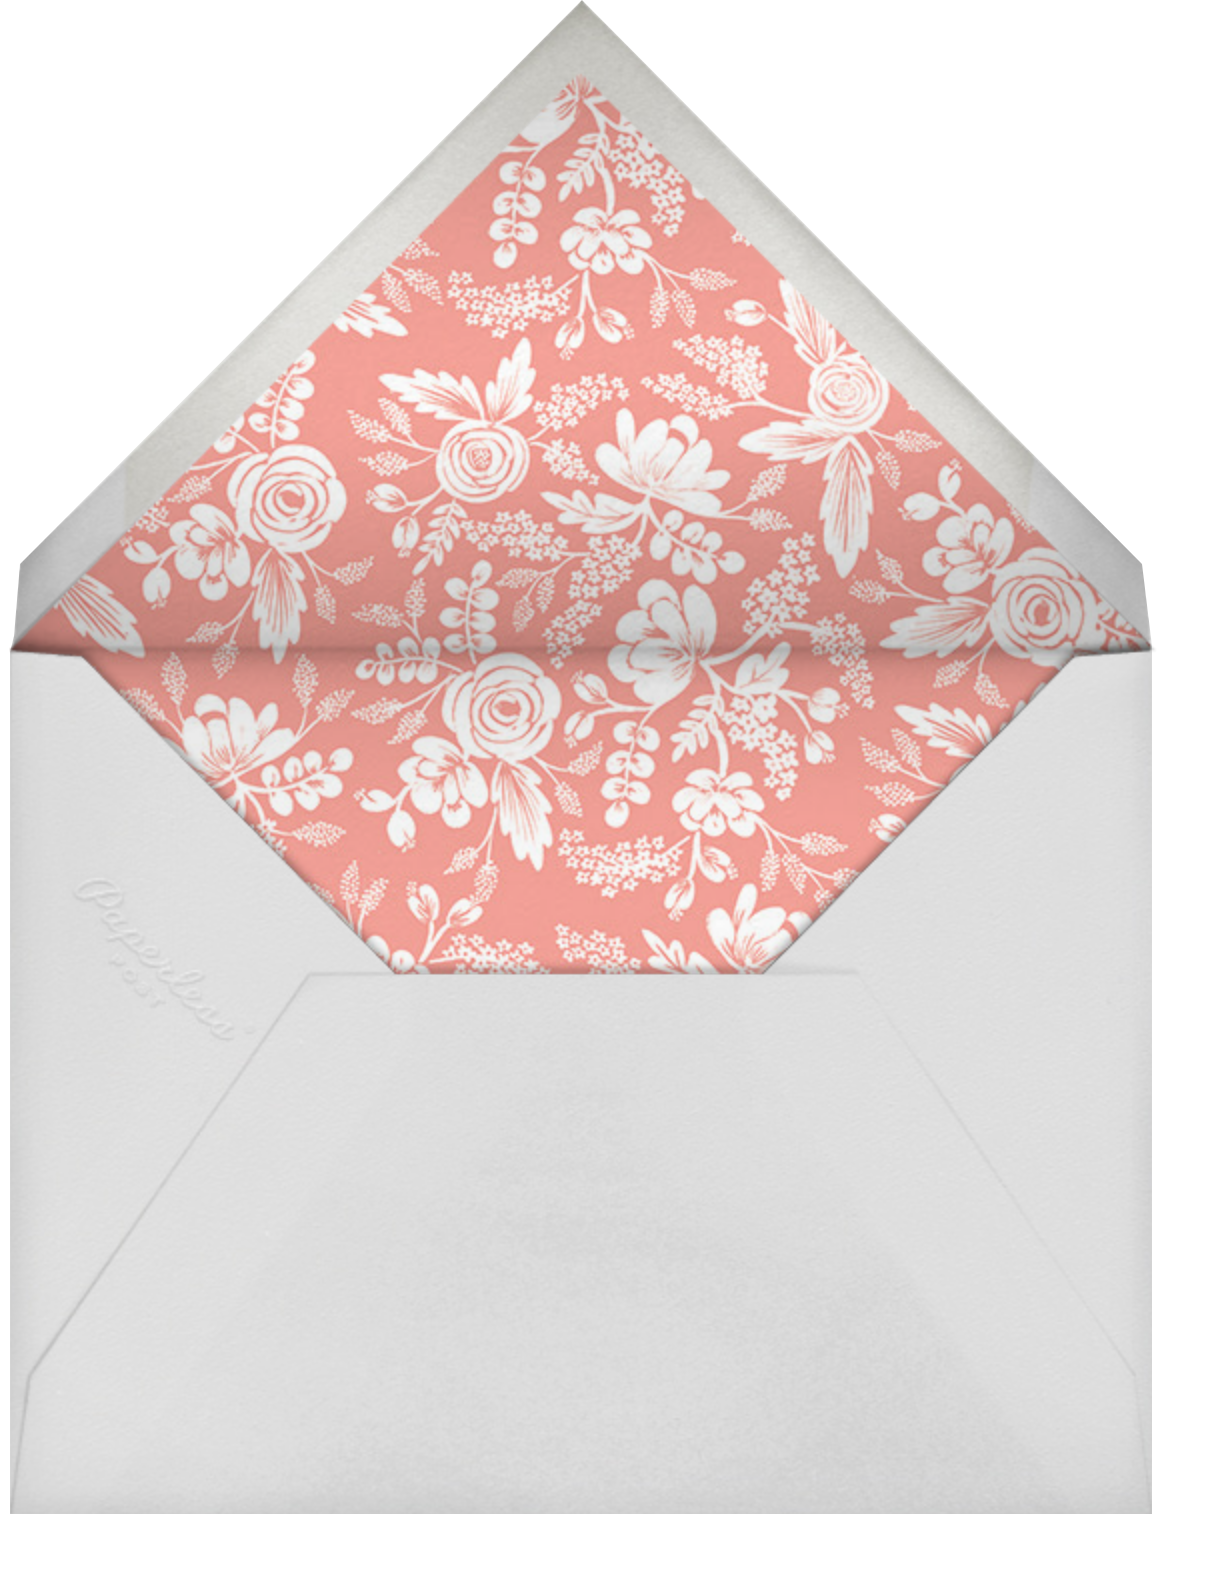 Heather and Lace (Square) - Silver - Rifle Paper Co. - Envelope